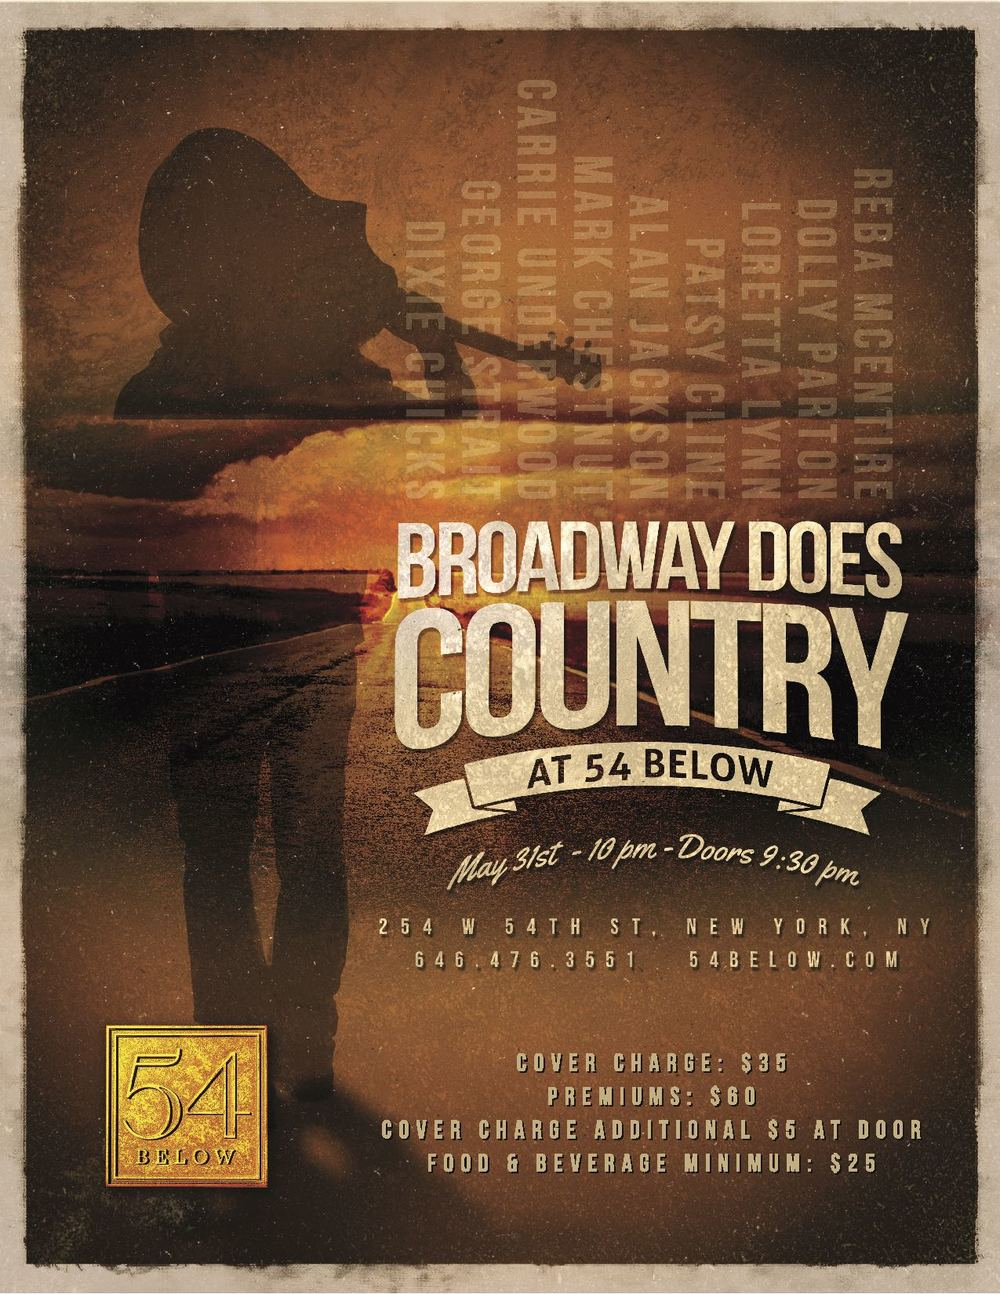 BWAYDoesCountry.jpg